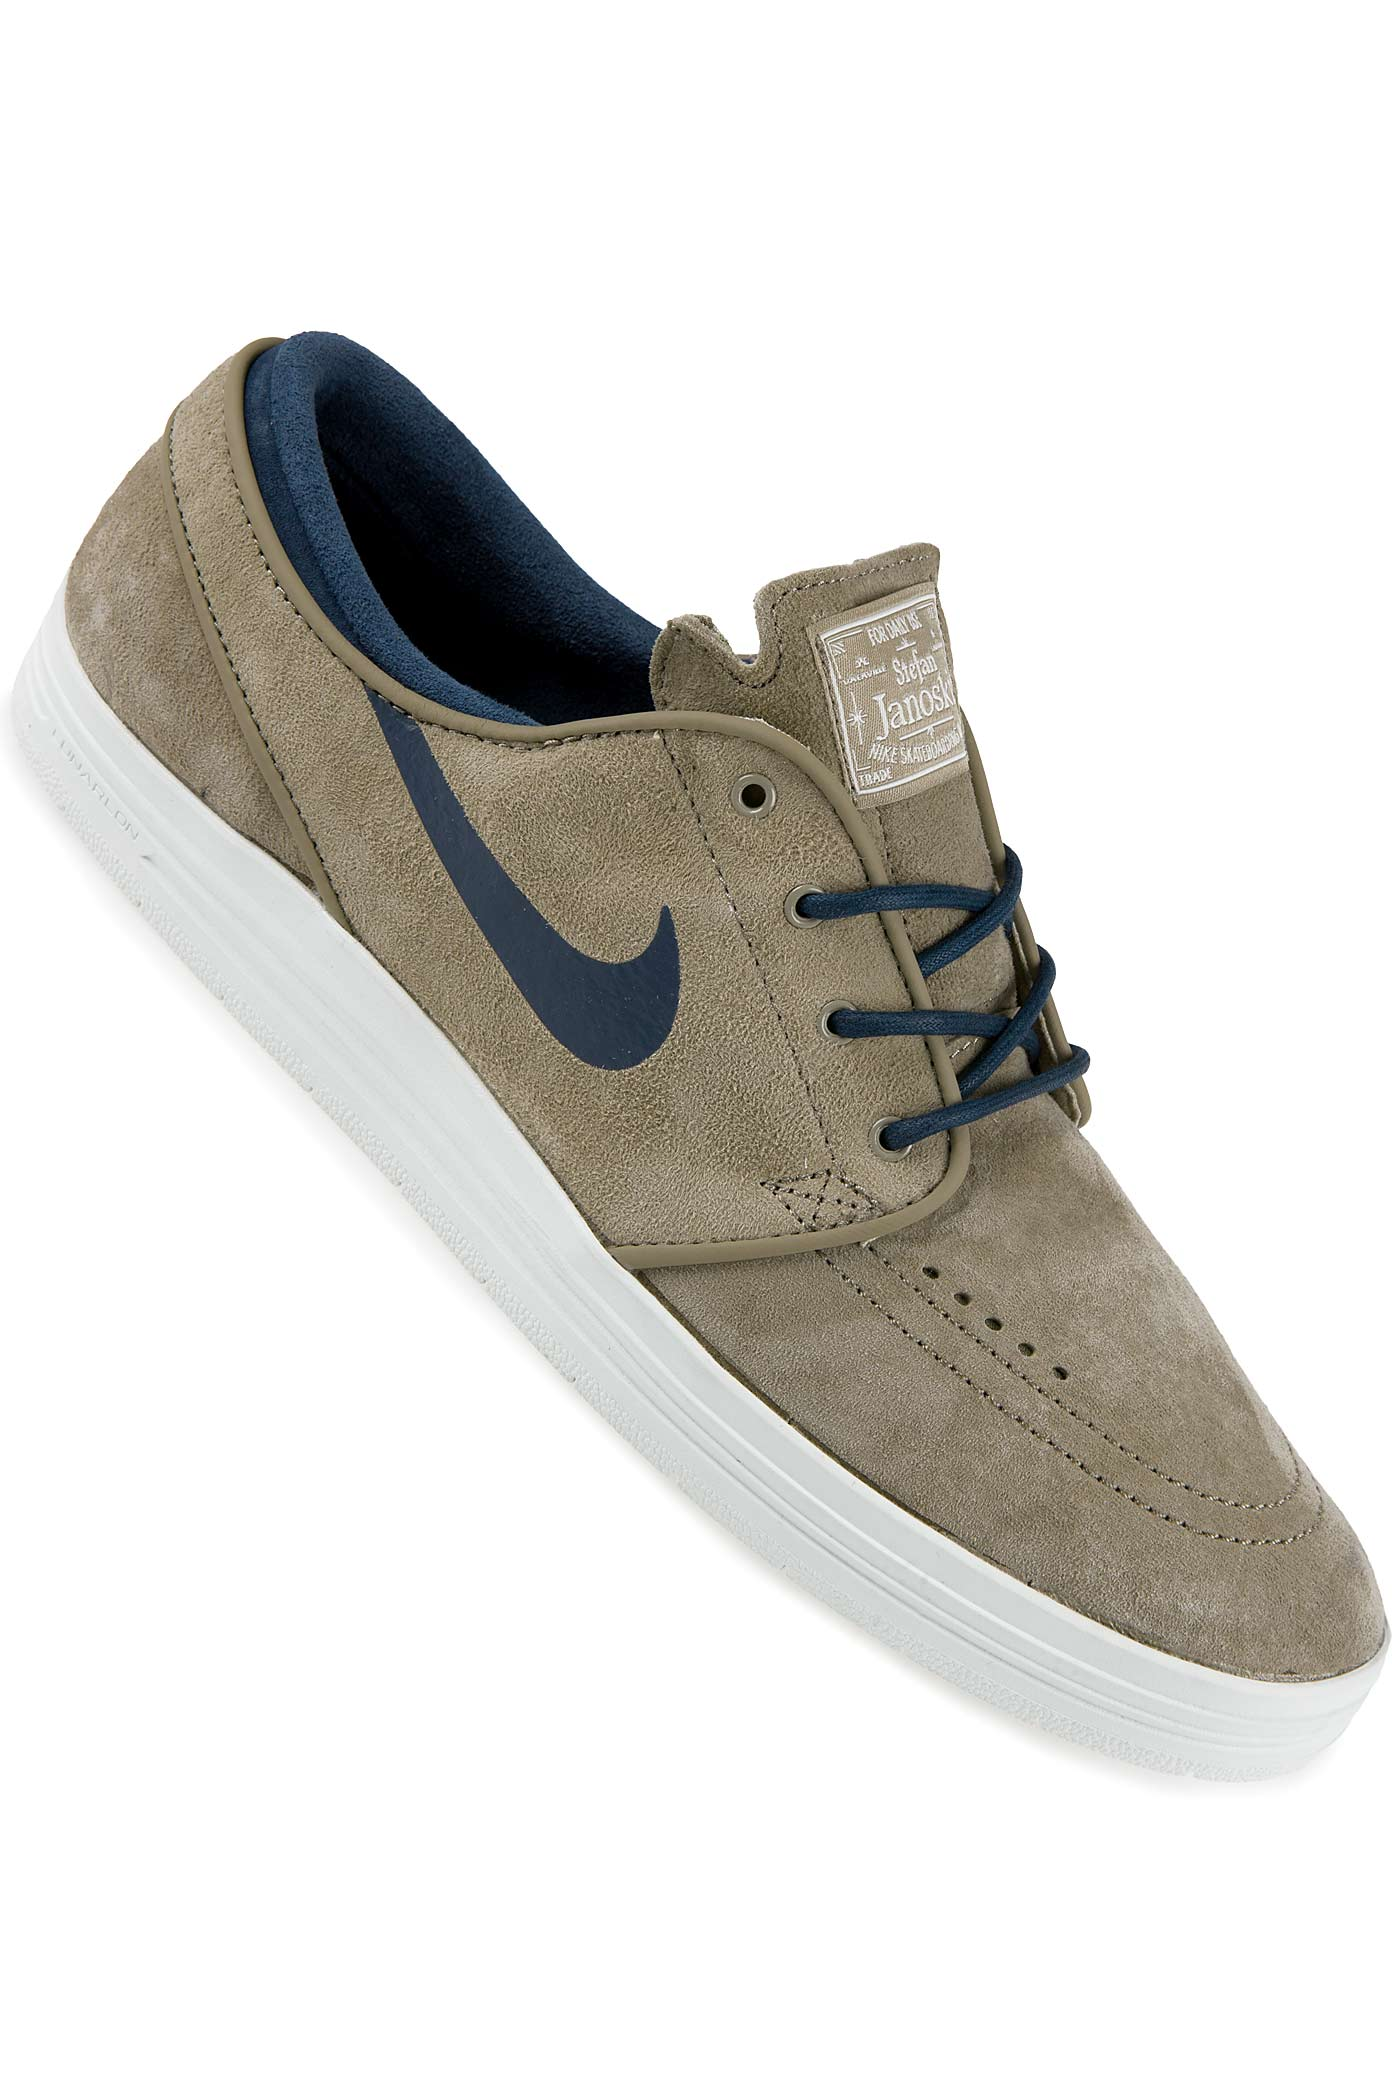 Nike Sb Shoes Sale Philippines